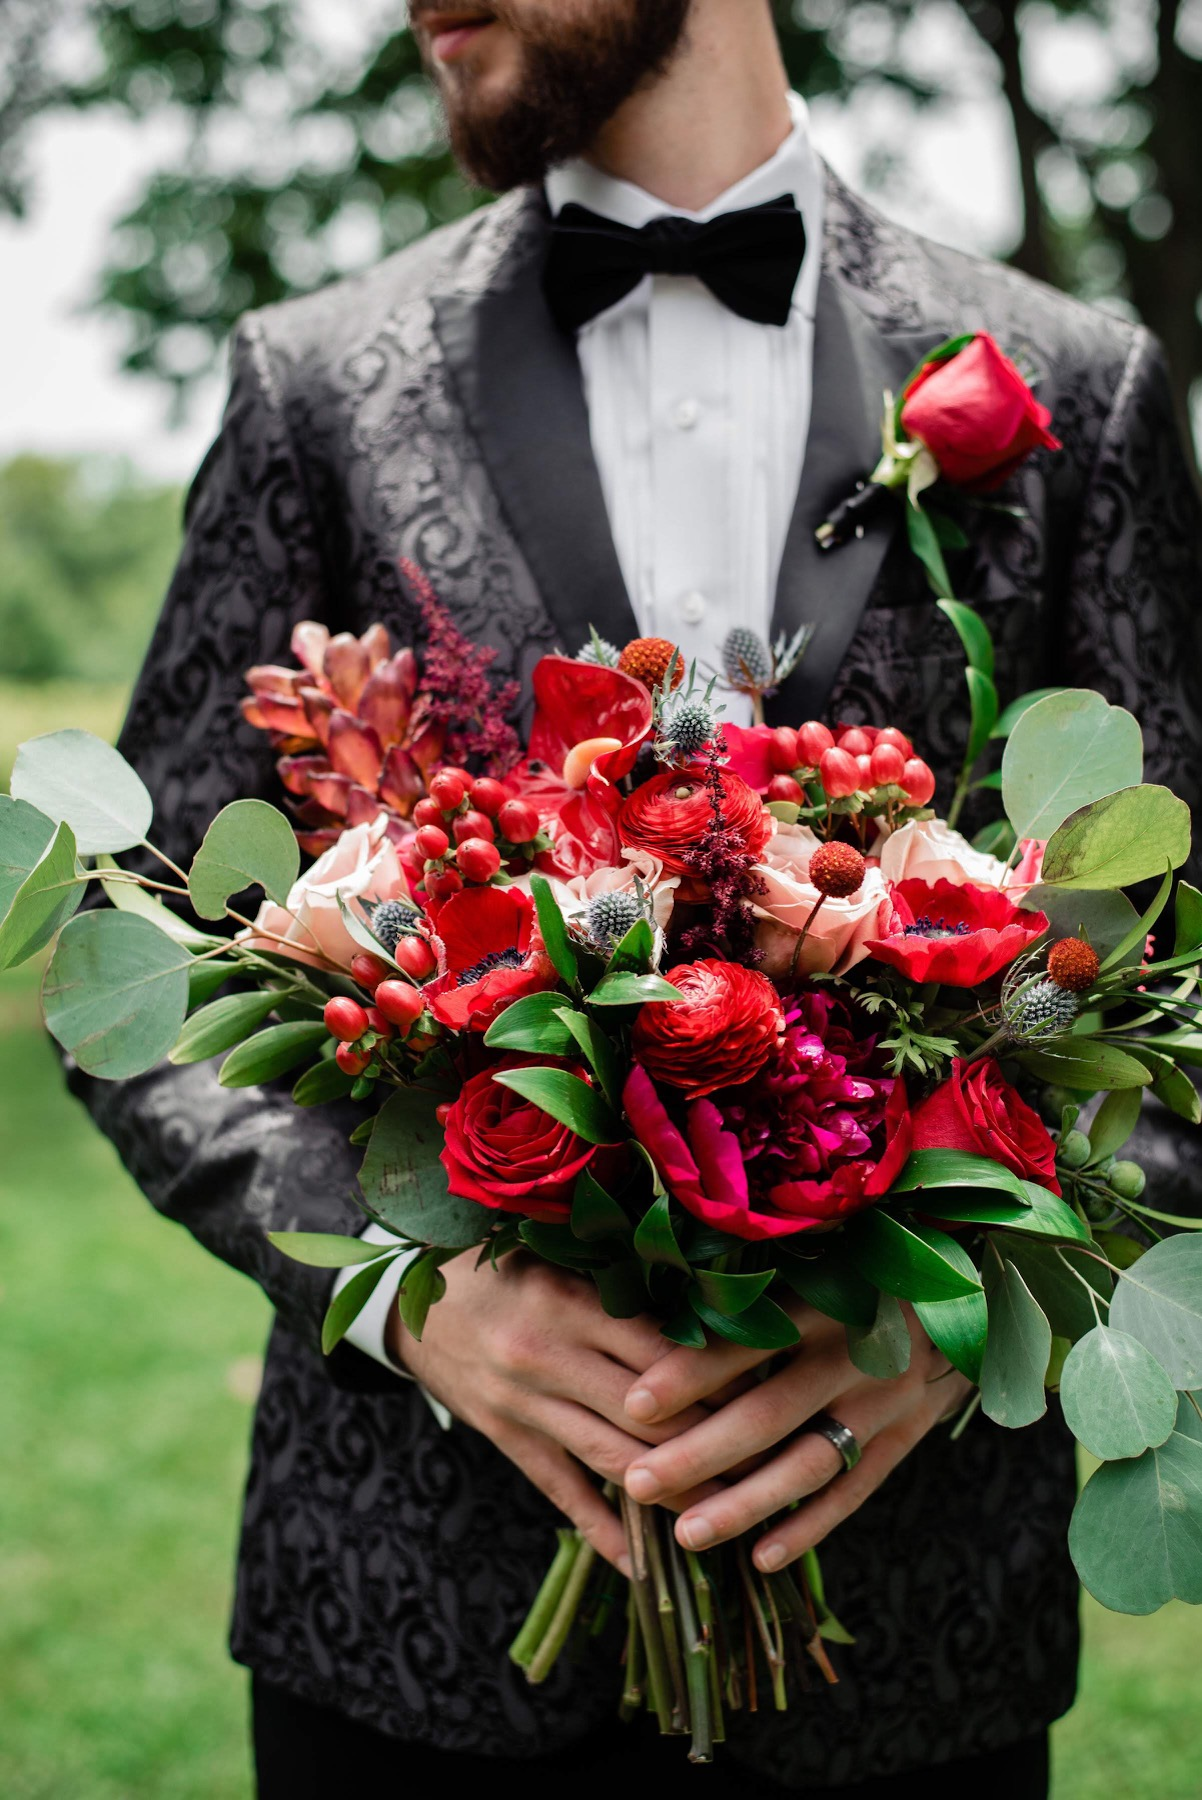 Styled Wedding at Arrington Vineyards in Arrington, Tennessee featuring cherry red and teal color palatte